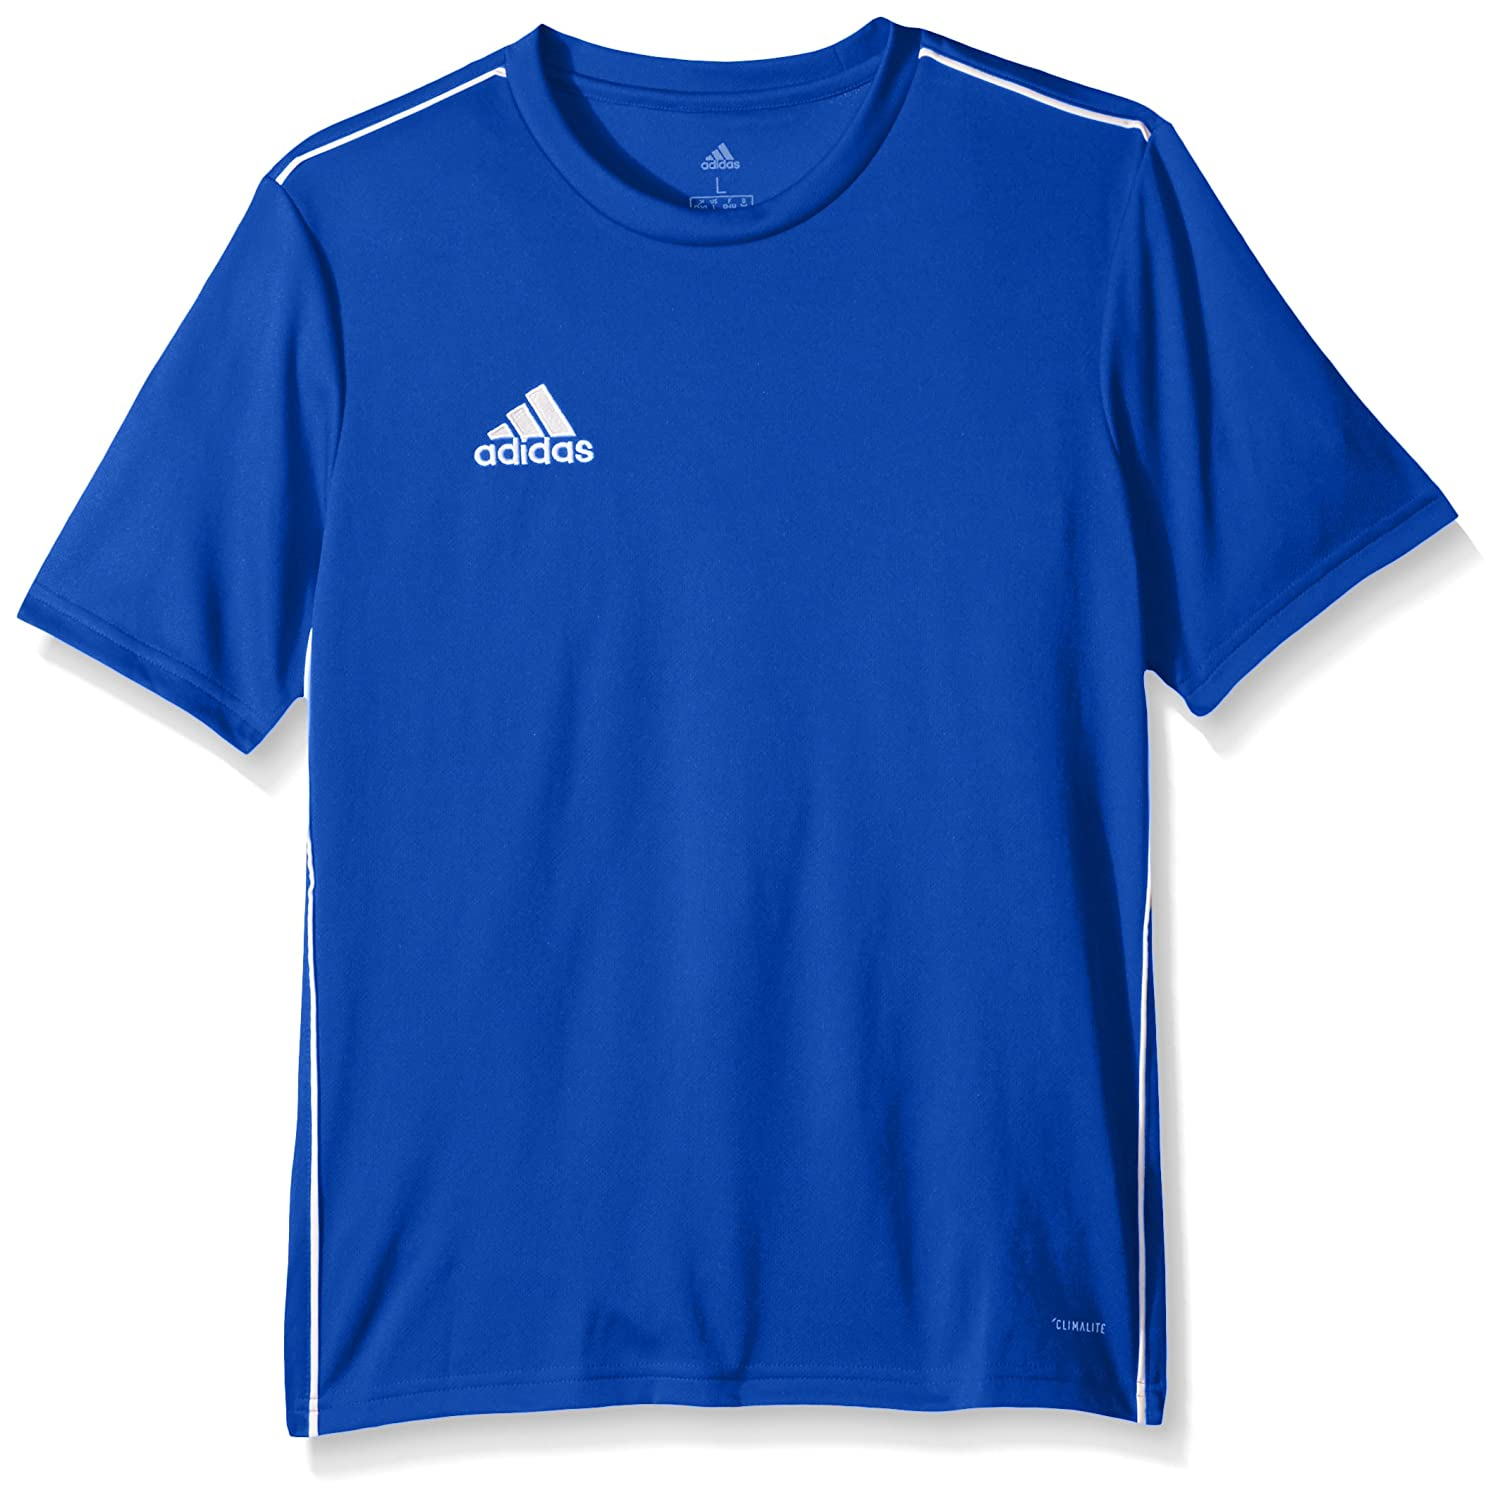 Adidasユニセックスユースサッカーcore18トレーニングジャージー B071YT5HKV Medium|Bold Blue/White Bold Blue/White Medium